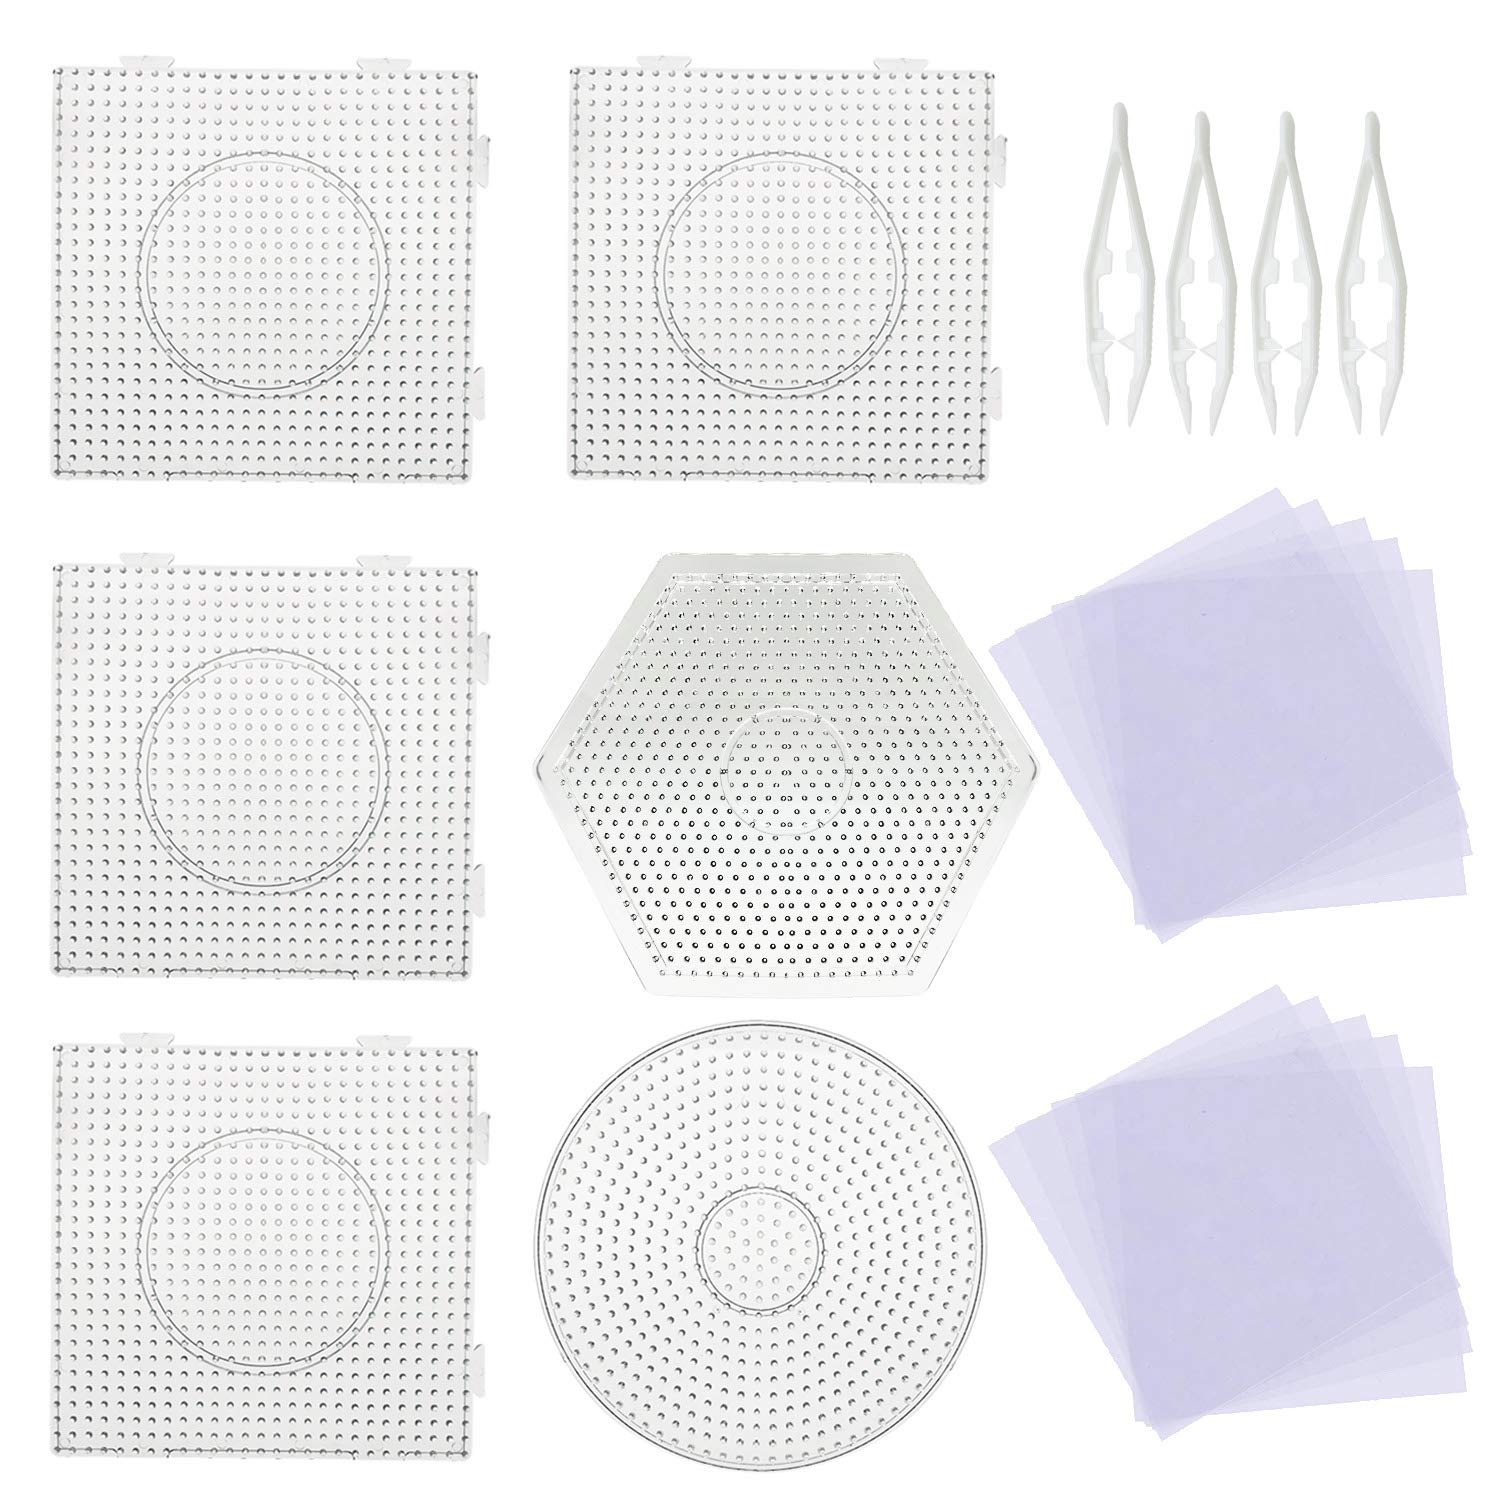 5mm 6Pcs Fuse Beads Boards Large Round Square  Pegboards 4Pcs White Beads Tweezers, 20Pcs Ironing Paper For Kids Craft Supplies